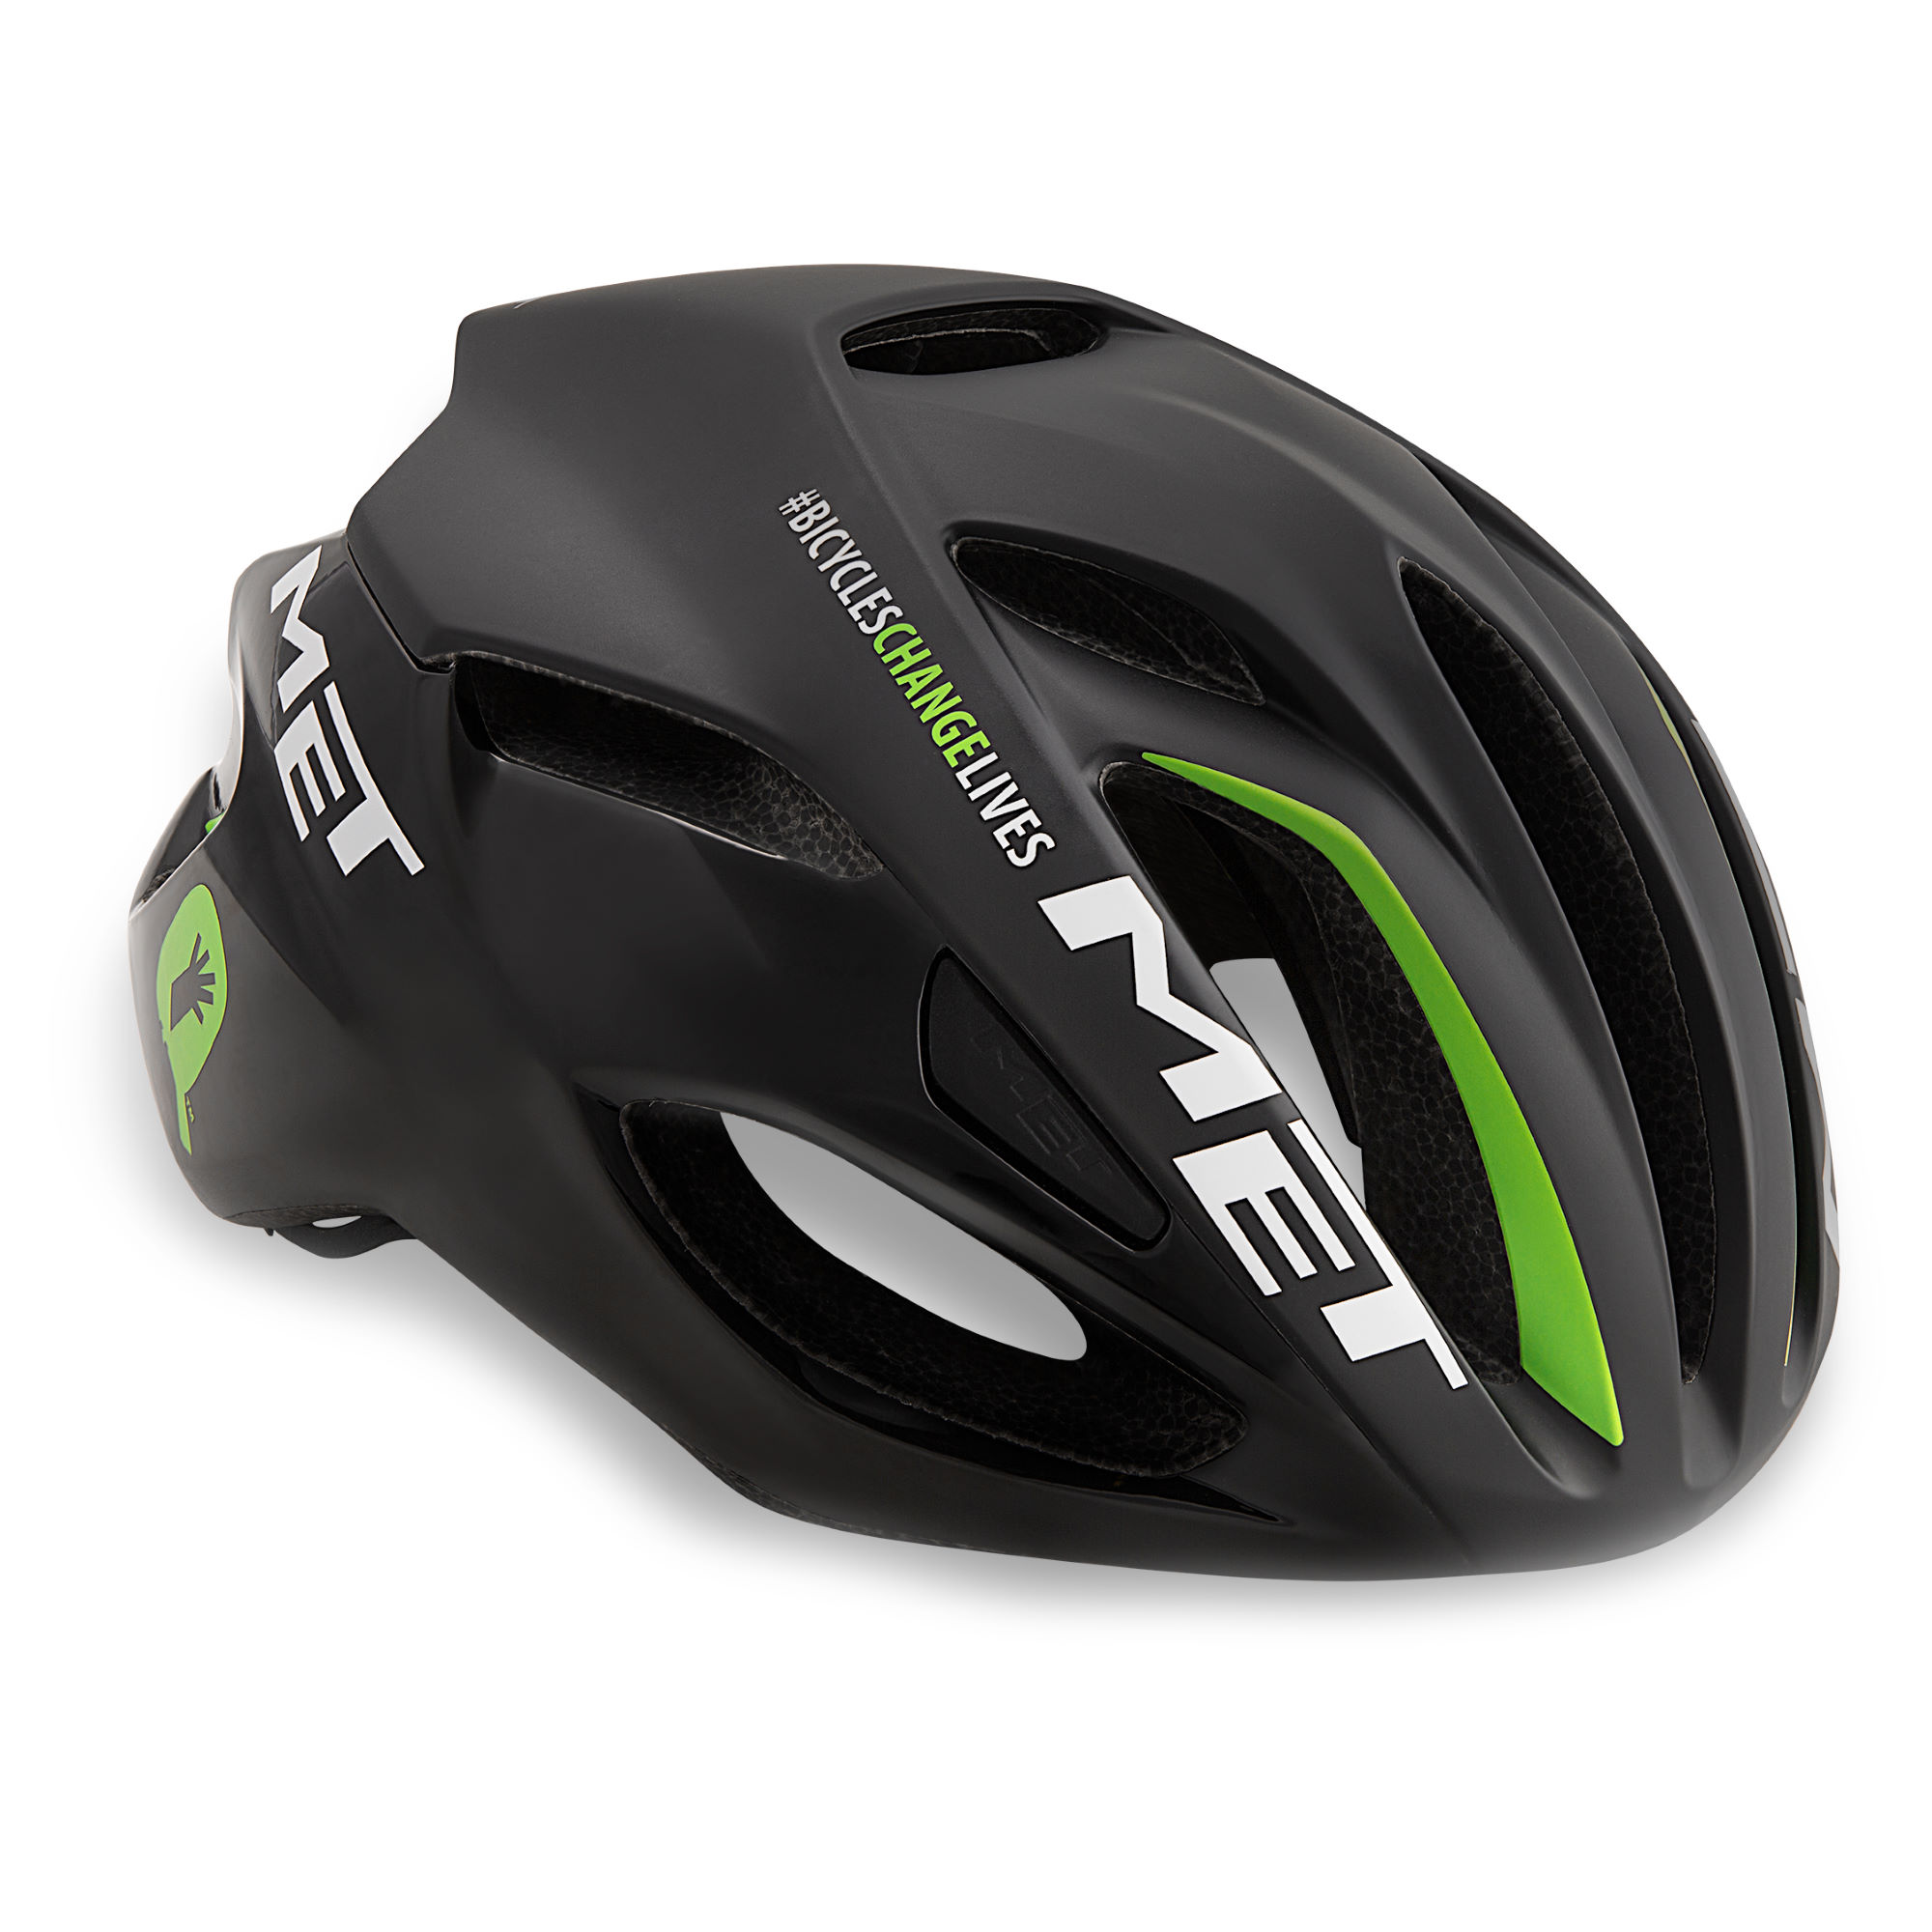 casques de route met dimension data rivale aero road helmet wiggle france. Black Bedroom Furniture Sets. Home Design Ideas